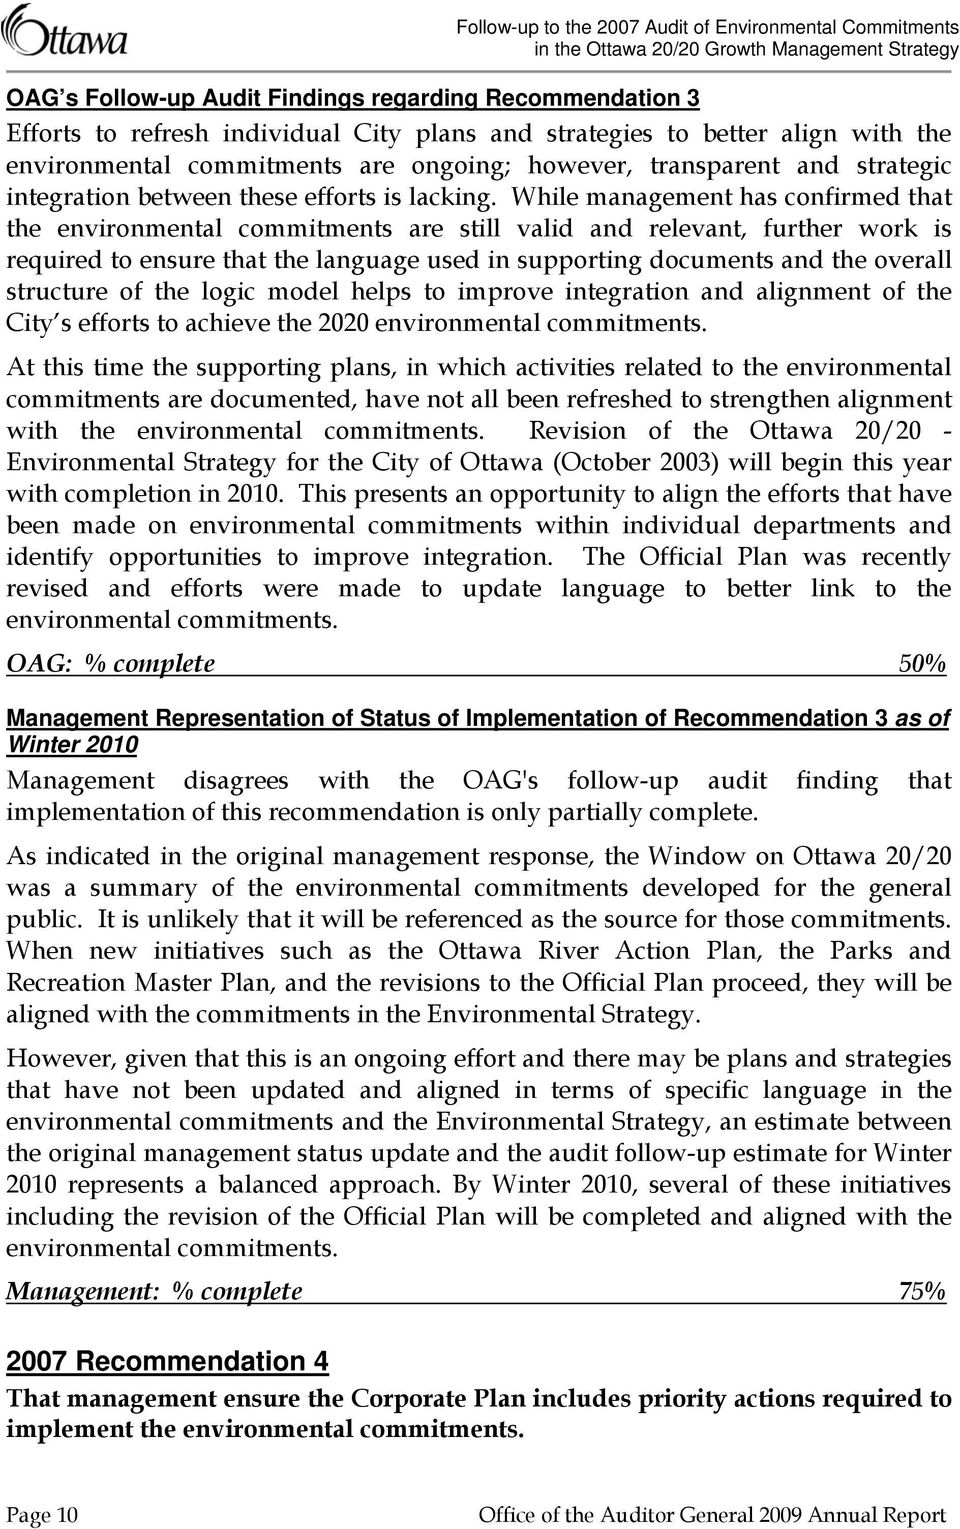 While management has confirmed that the environmental commitments are still valid and relevant, further work is required to ensure that the language used in supporting documents and the overall